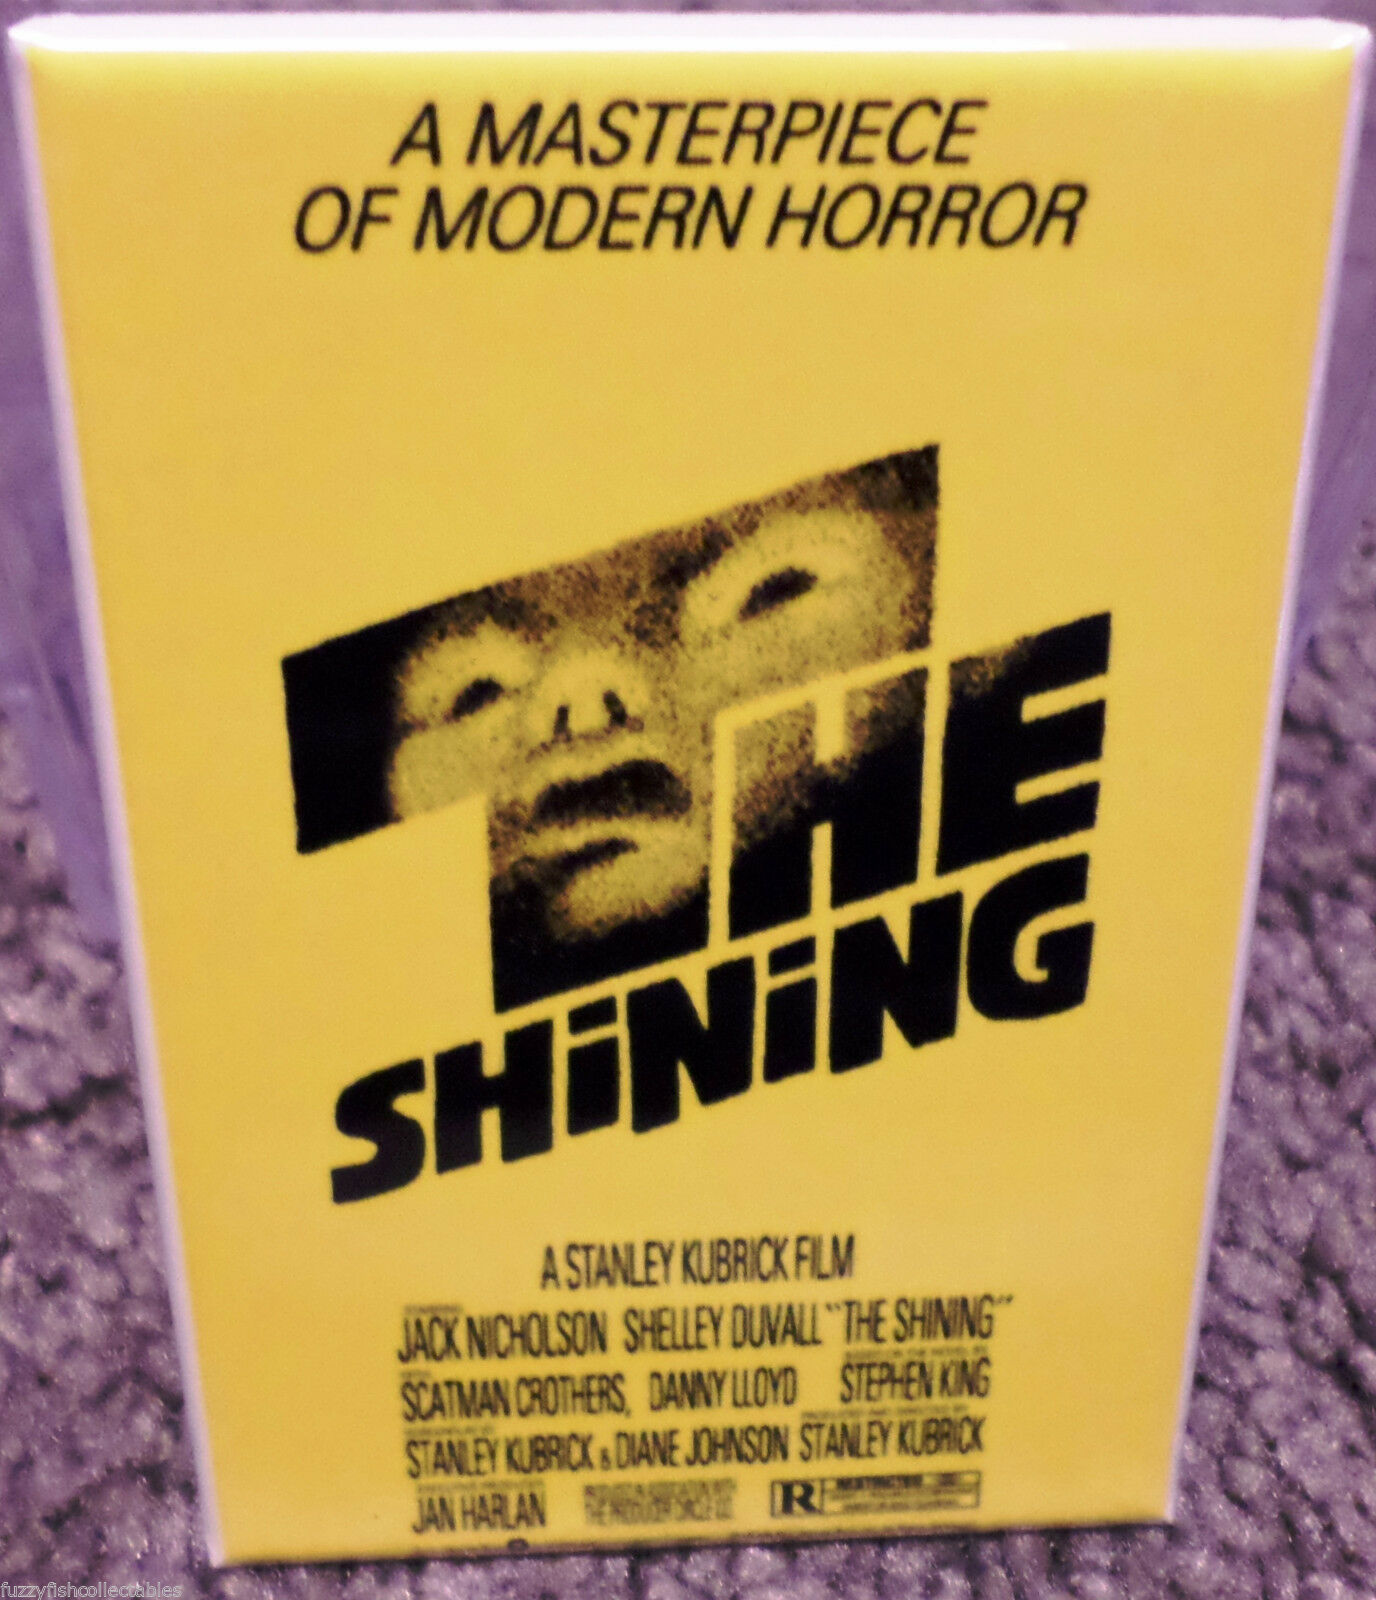 THE SHINING MOVIE POSTER MAGNET 2X3 INCHES JACK NICHOLSON STANLEY KUBRICK